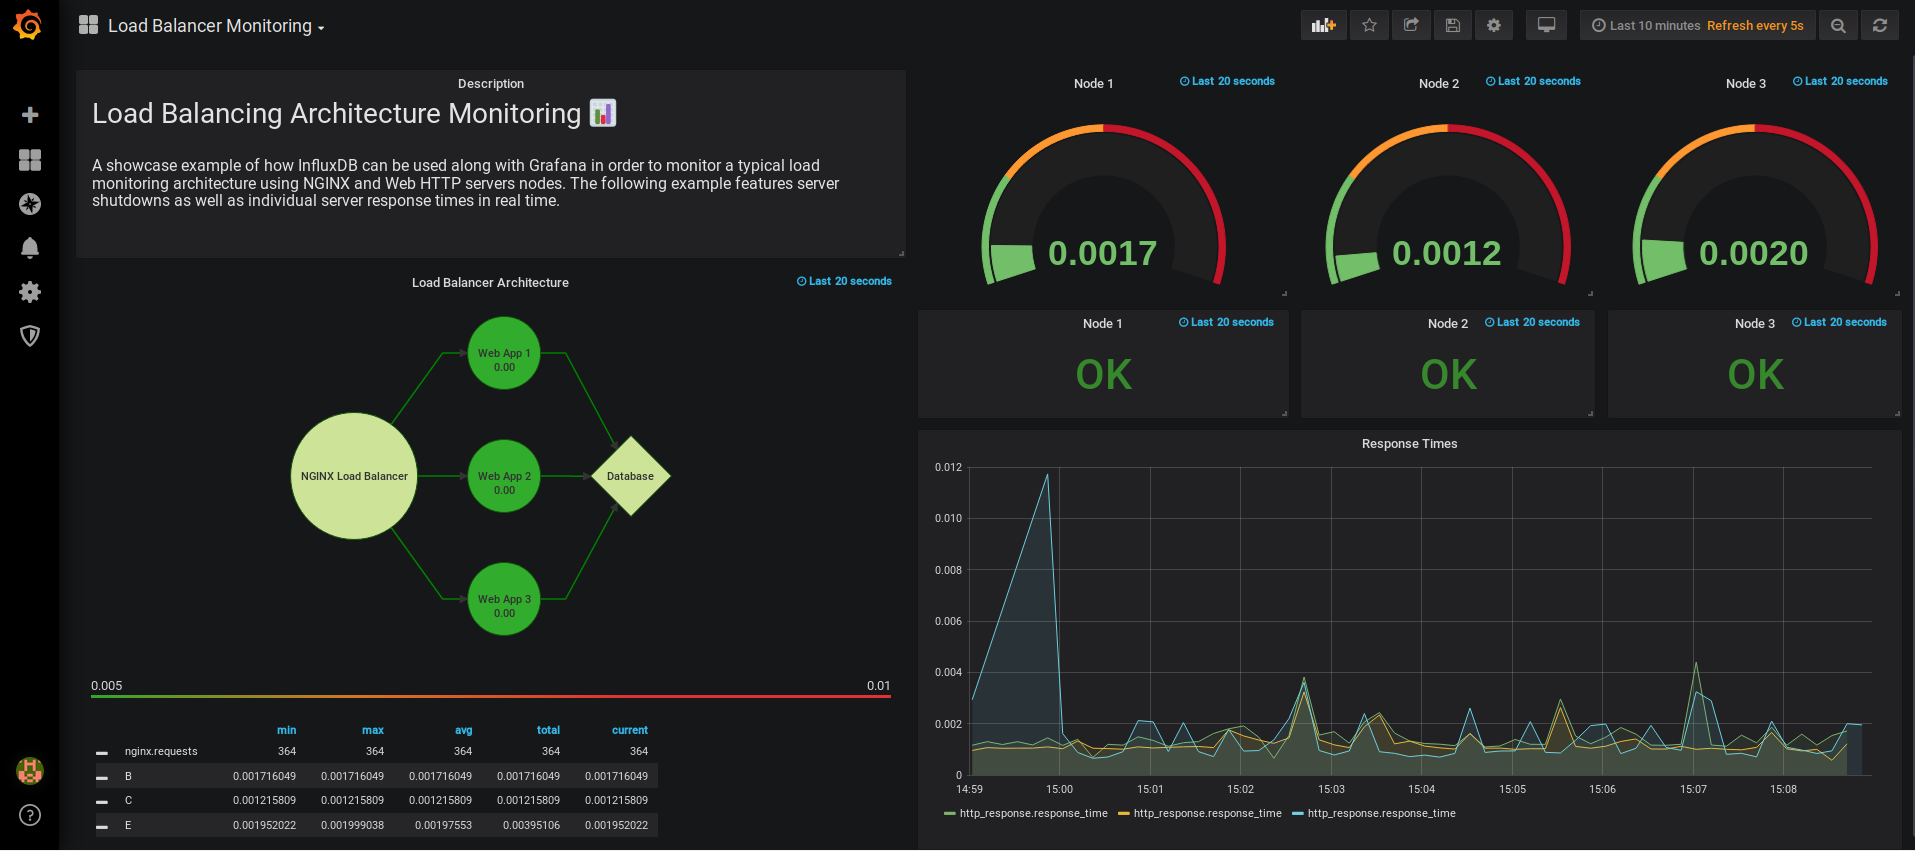 Monitoring a server cluster using Grafana and InfluxDB